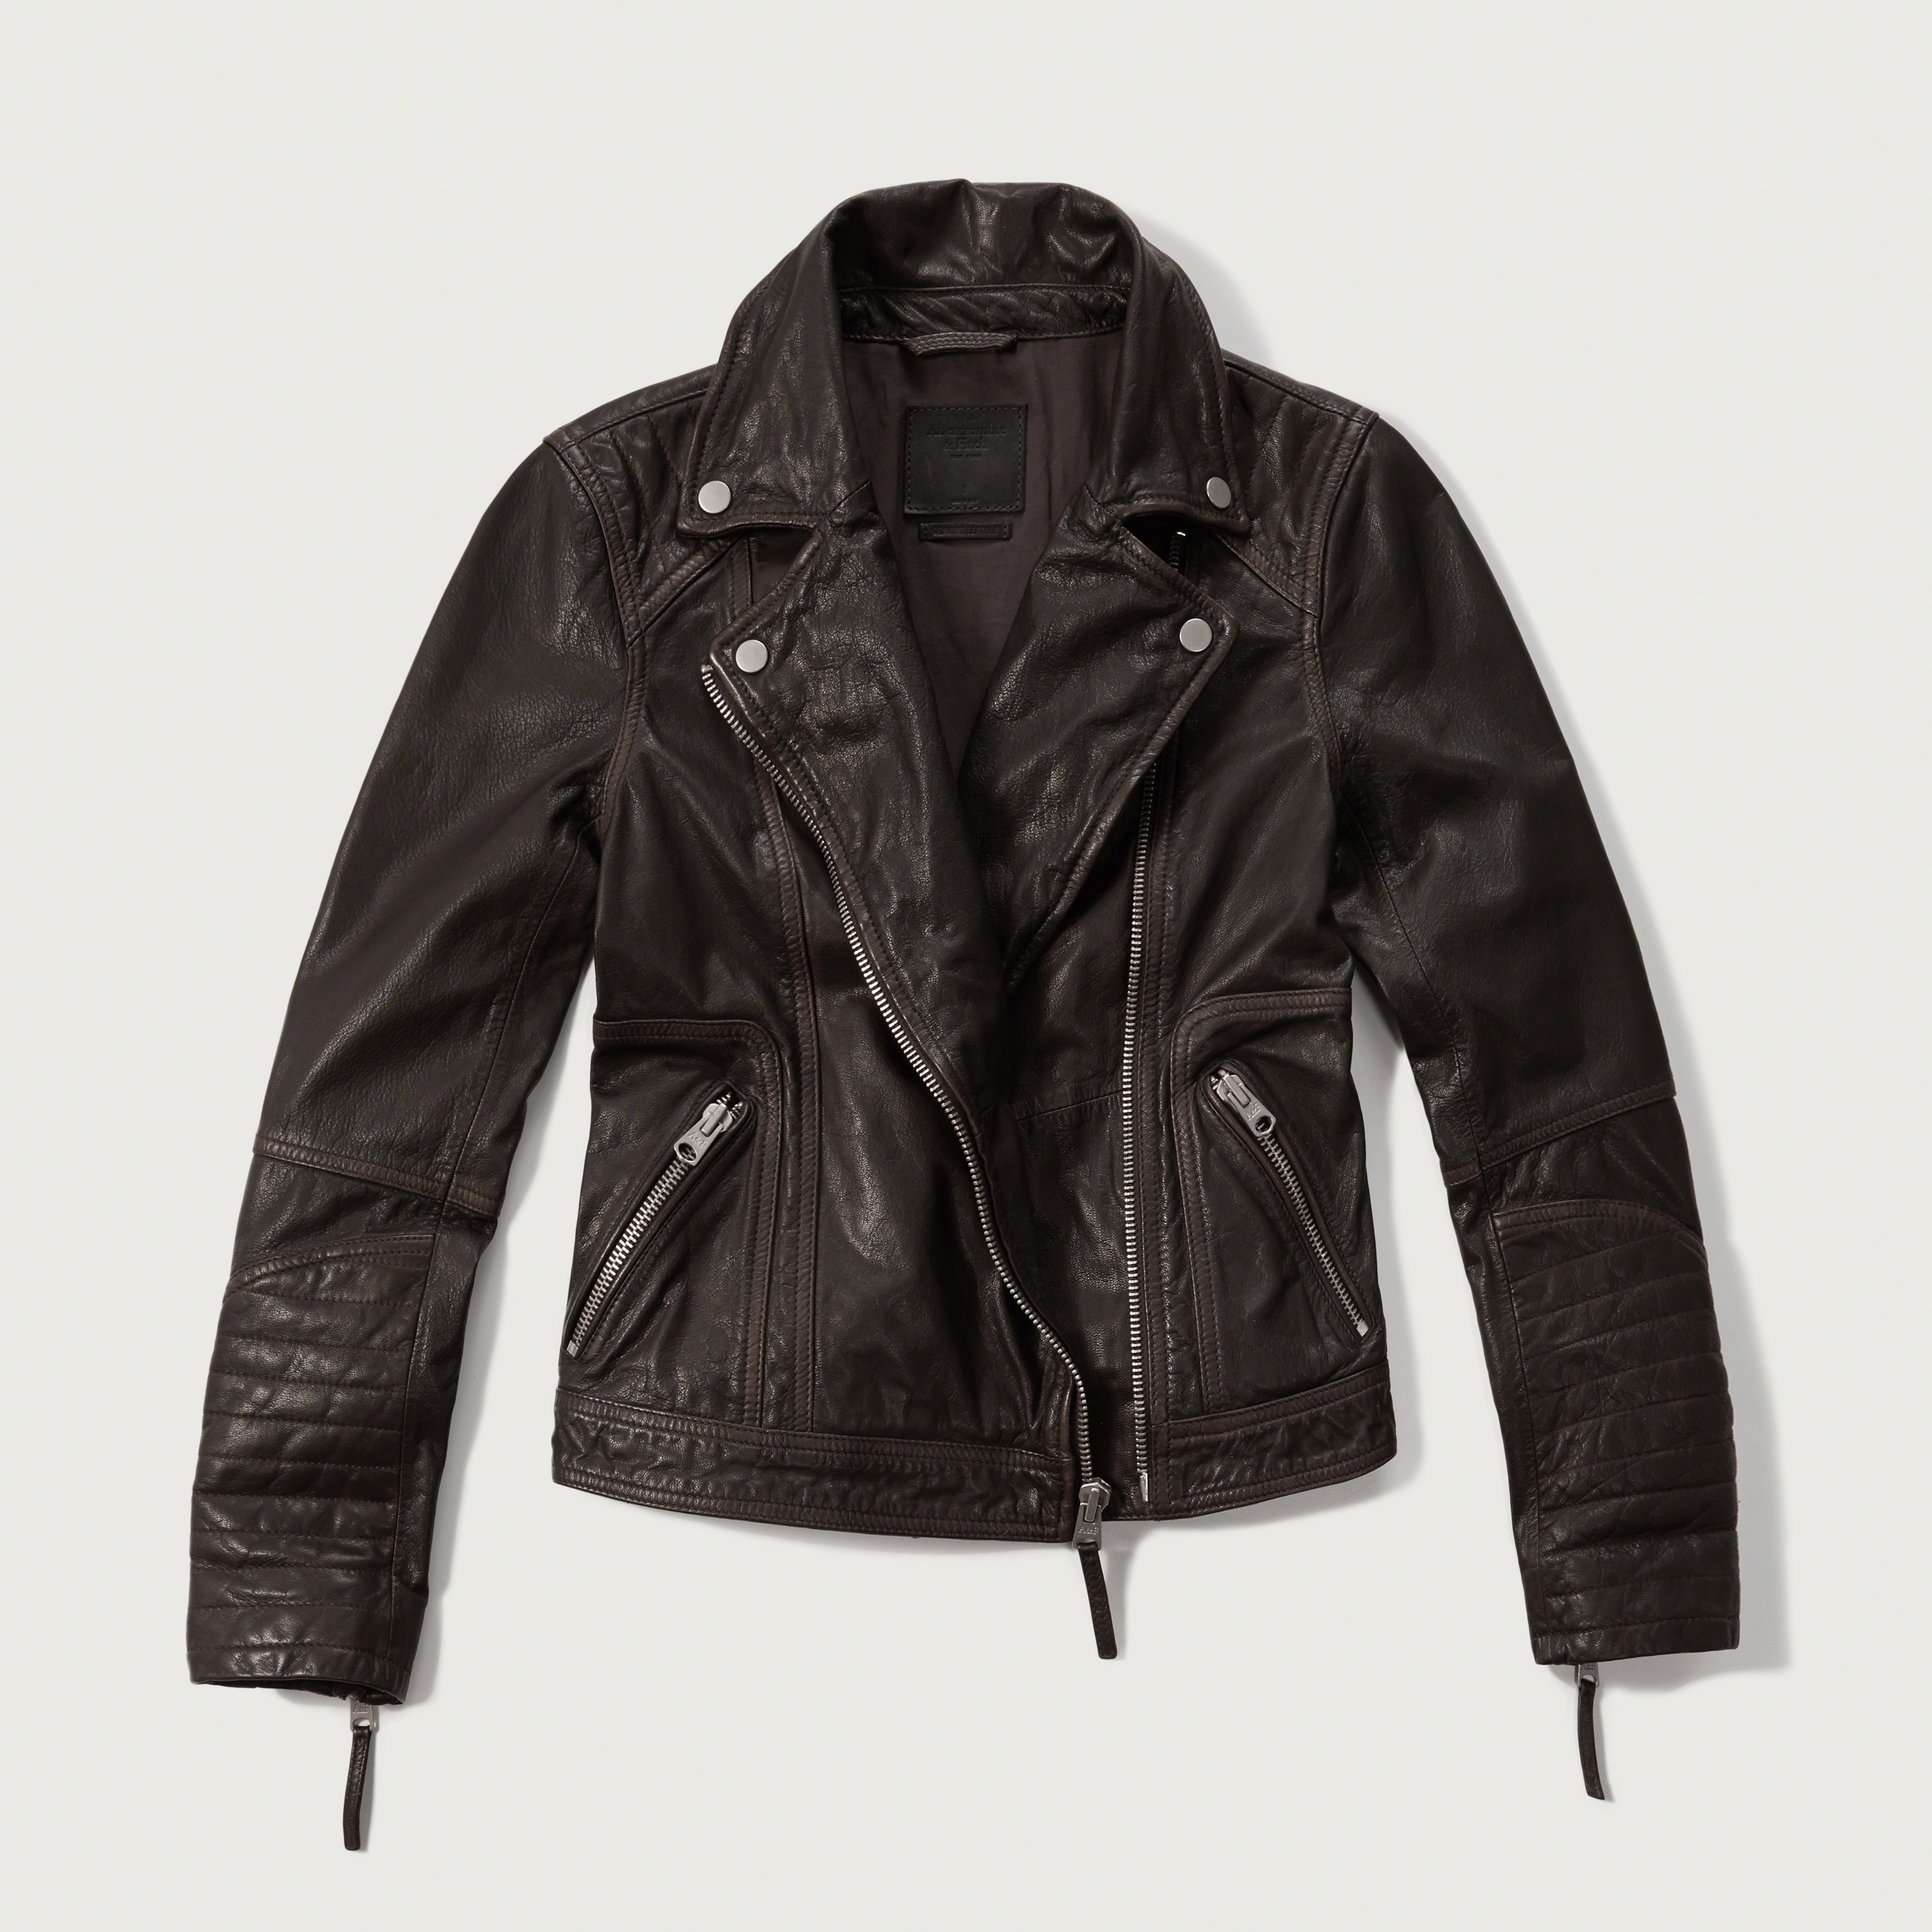 Abercrombie Fitch Accessories Abercrombie Fitch Womens: Abercrombie & Fitch Genuine Leather Biker Jacket In